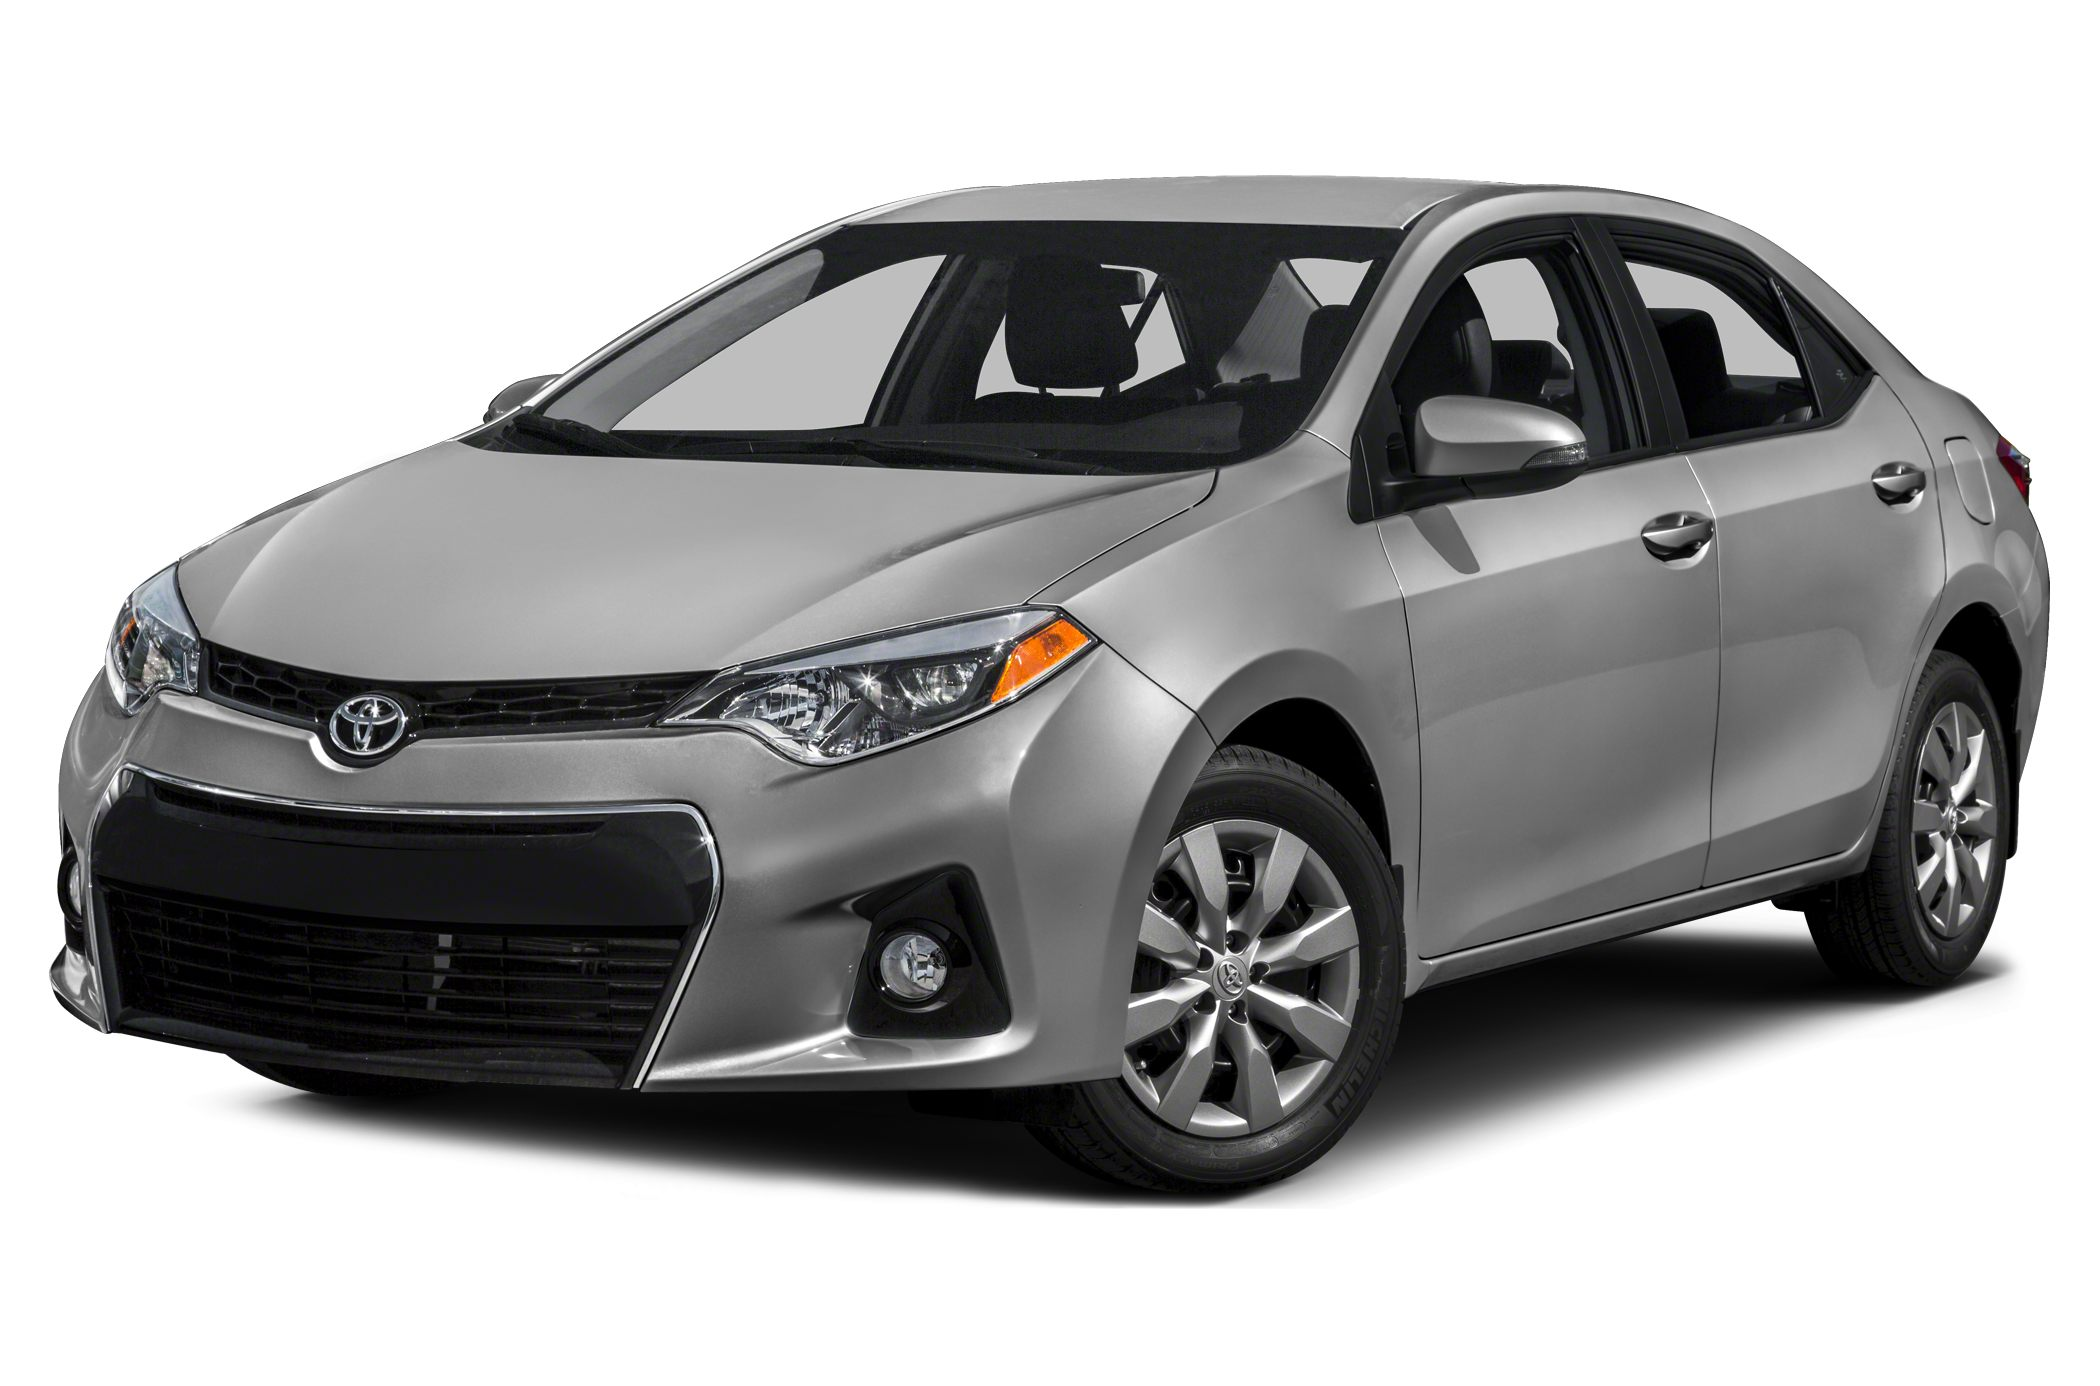 2015 Toyota Corolla S Plus Sedan for sale in Potsdam for $21,171 with 10 miles